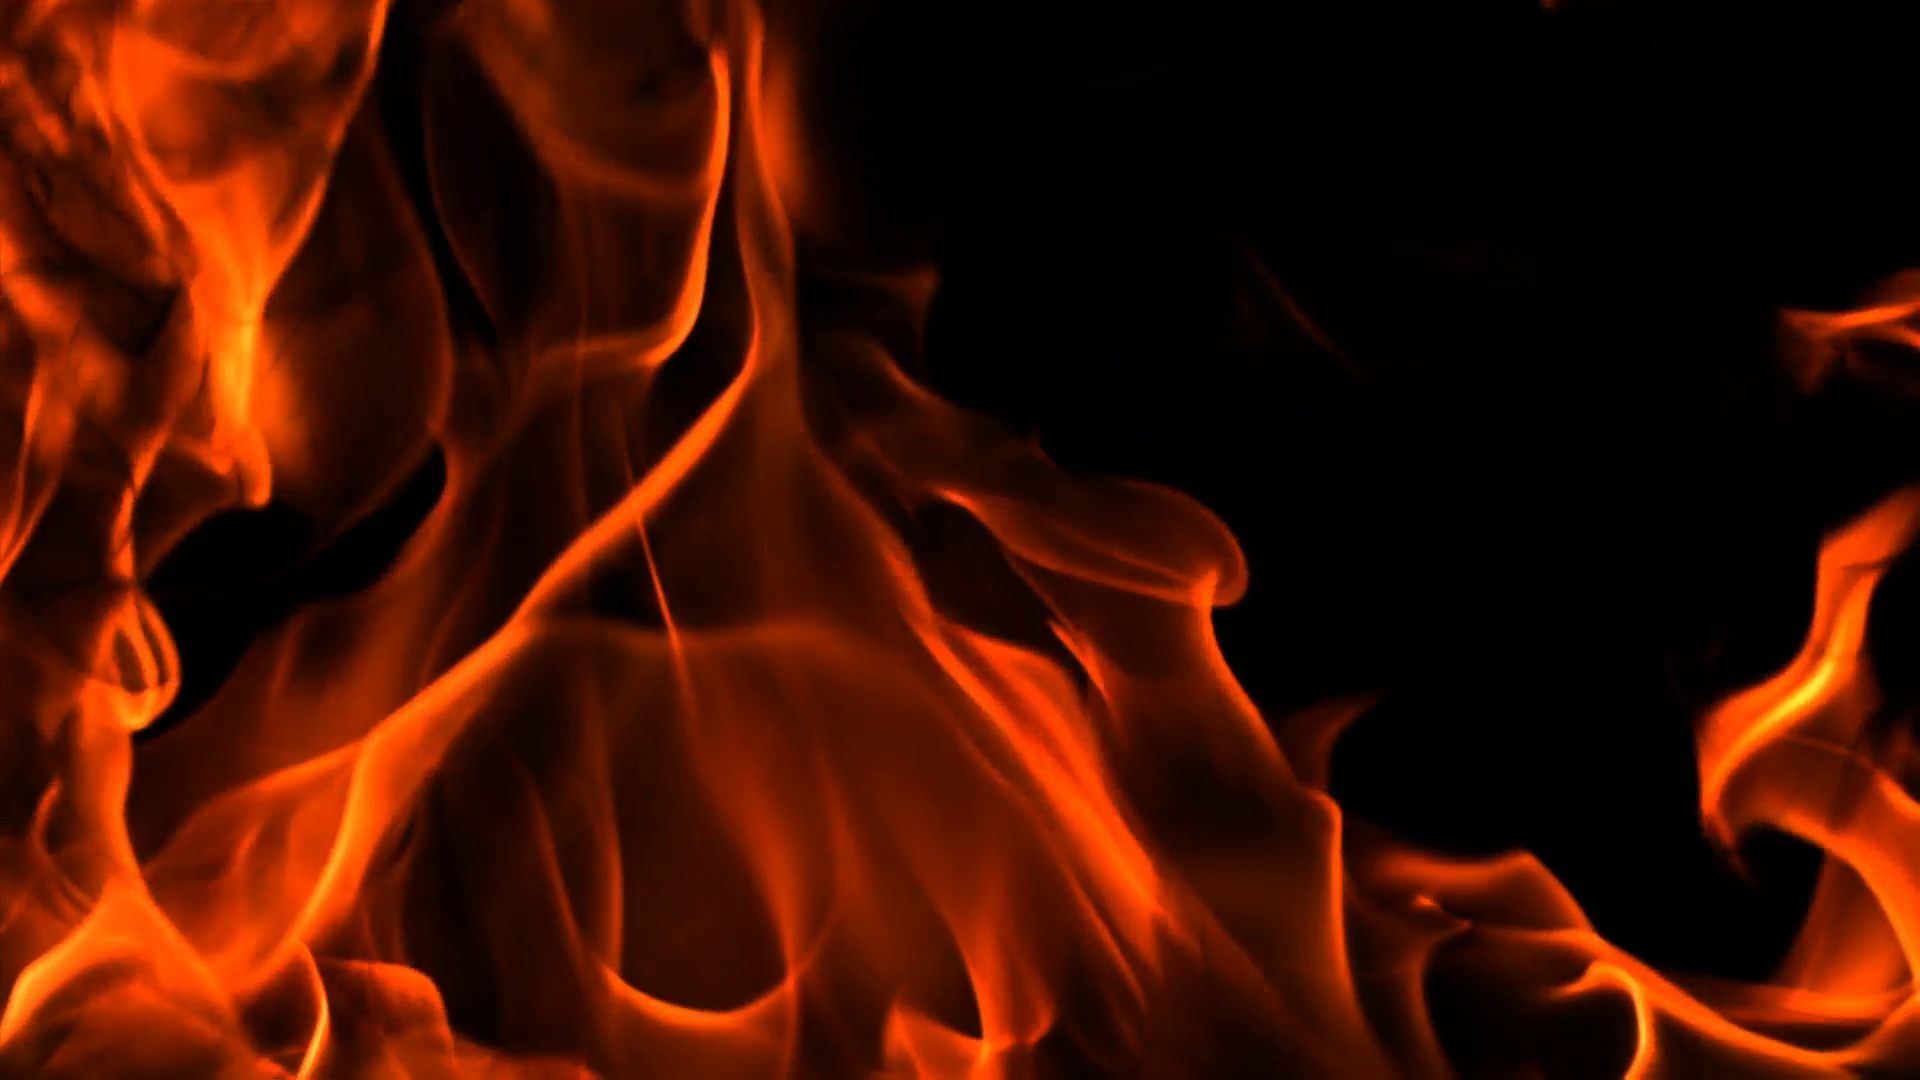 Alpha Channel Flames and Fire 4.